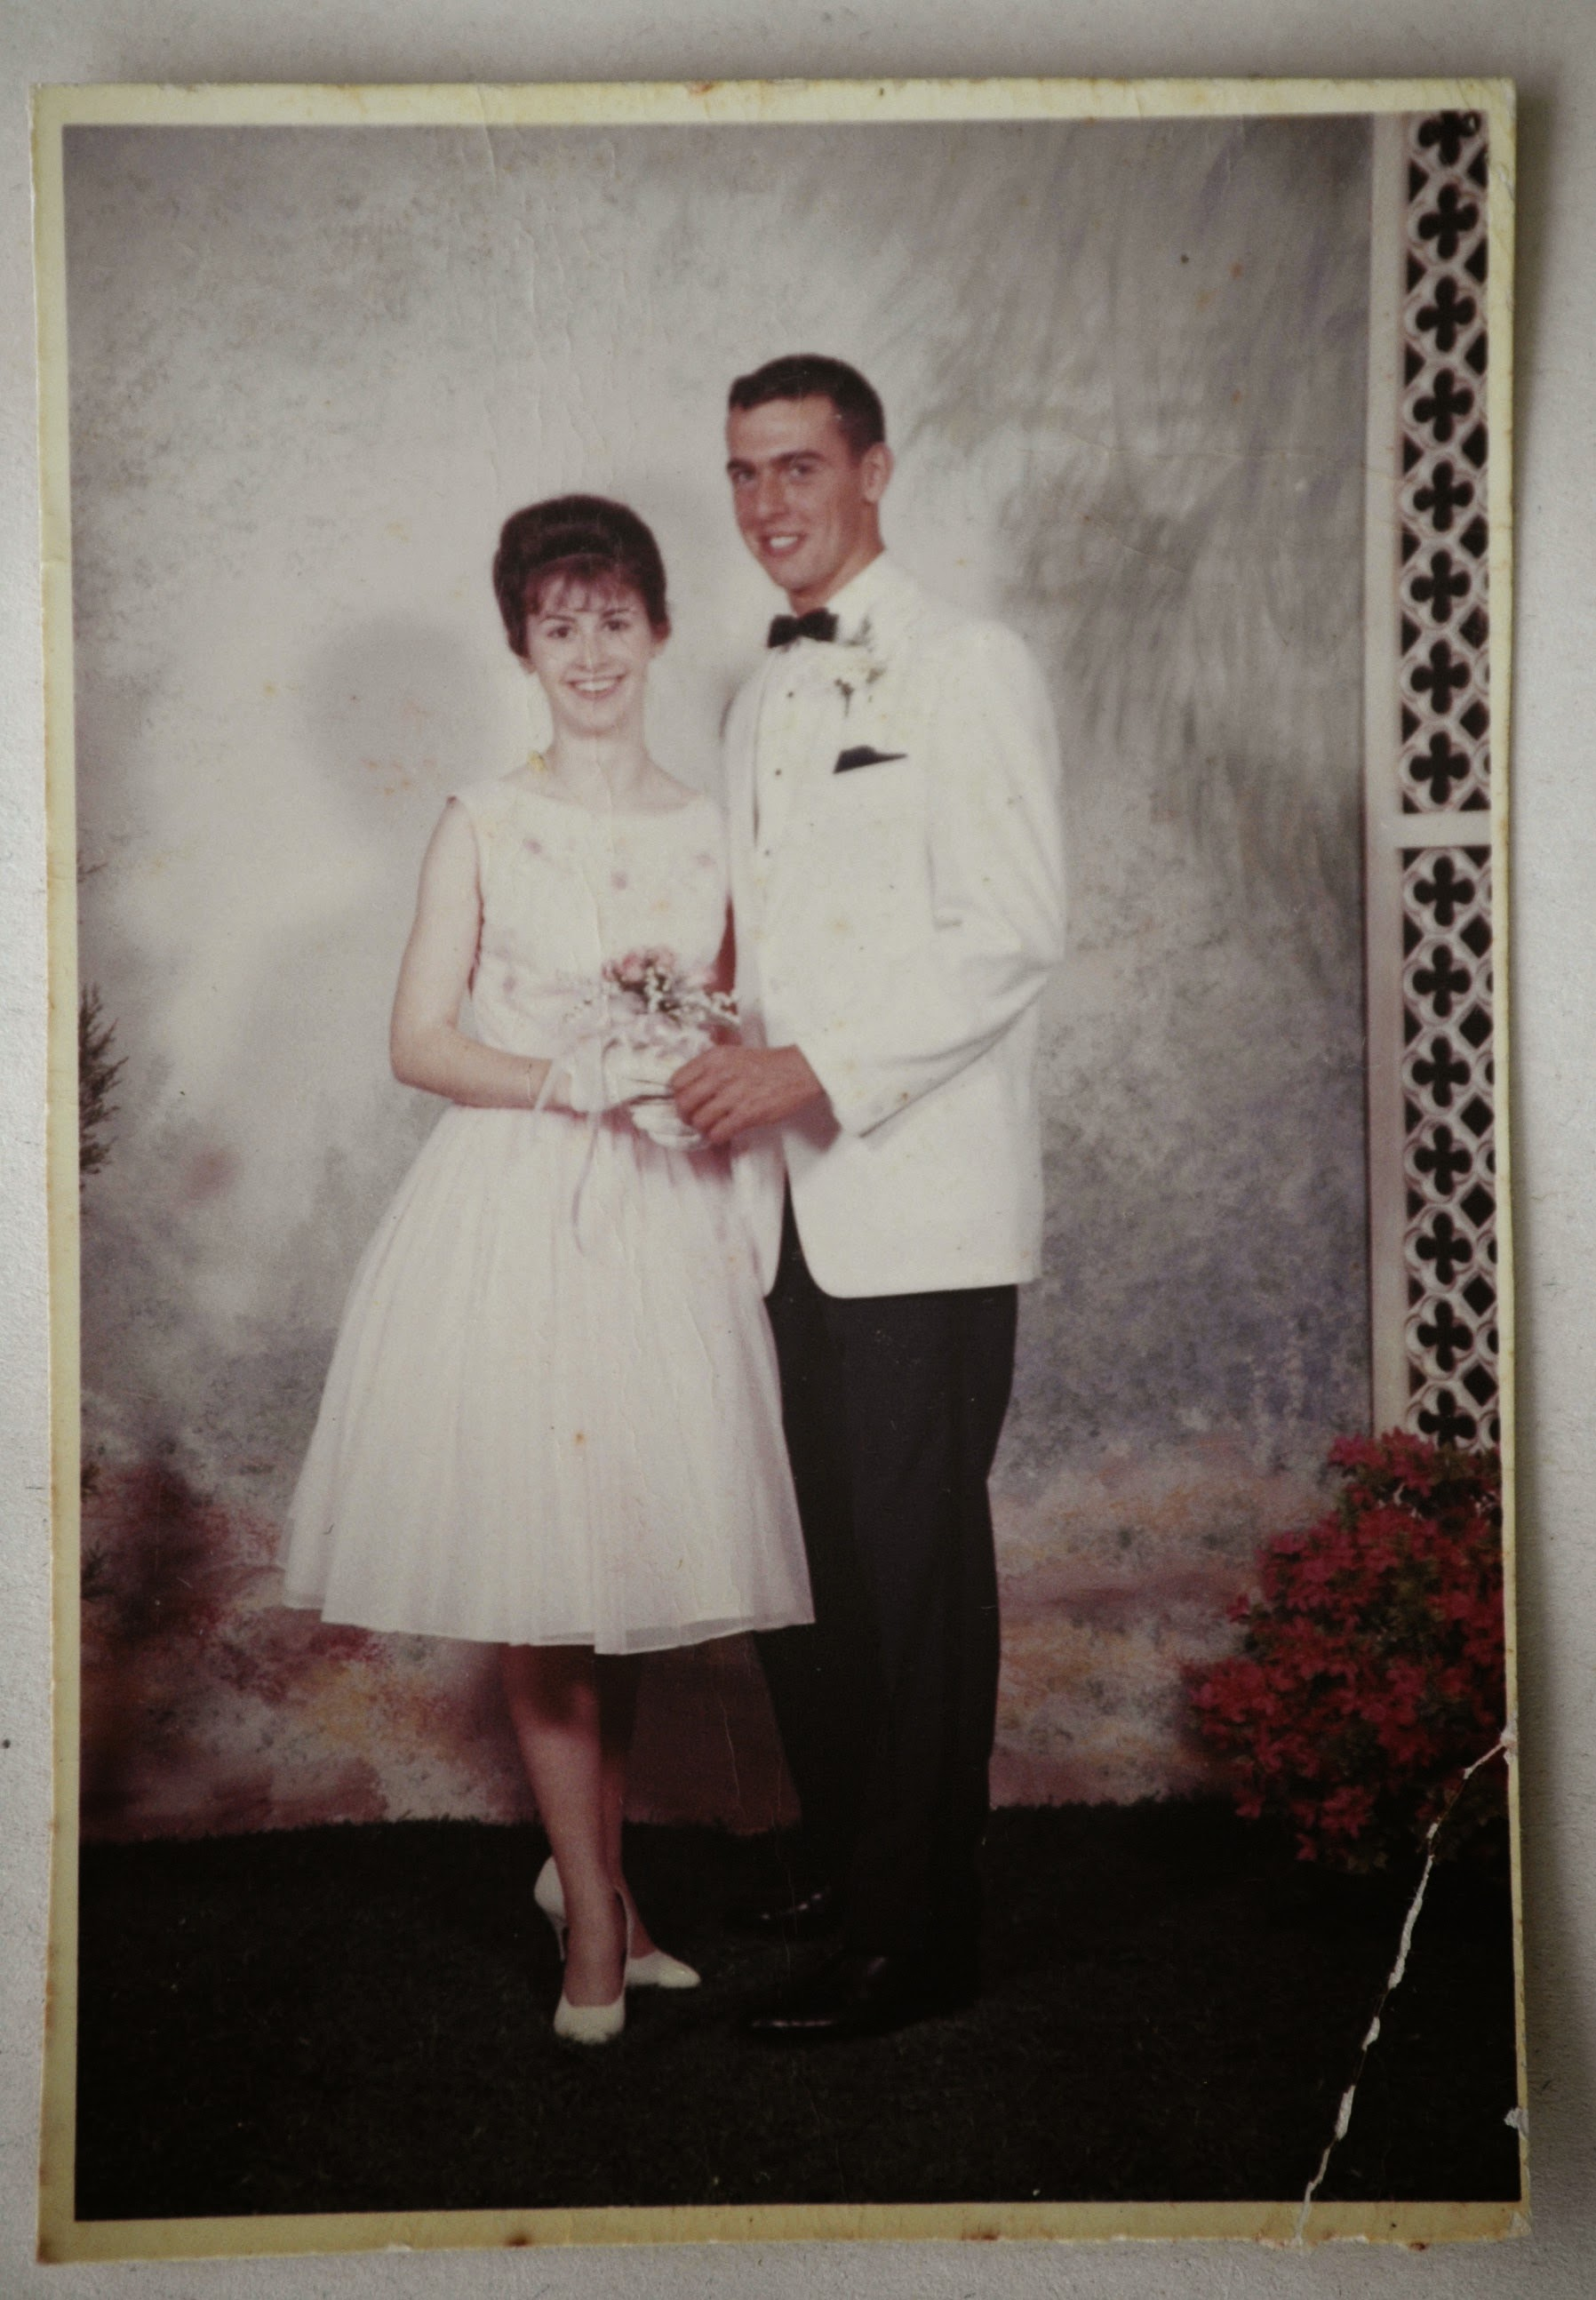 Marie and hank at prom in 1964